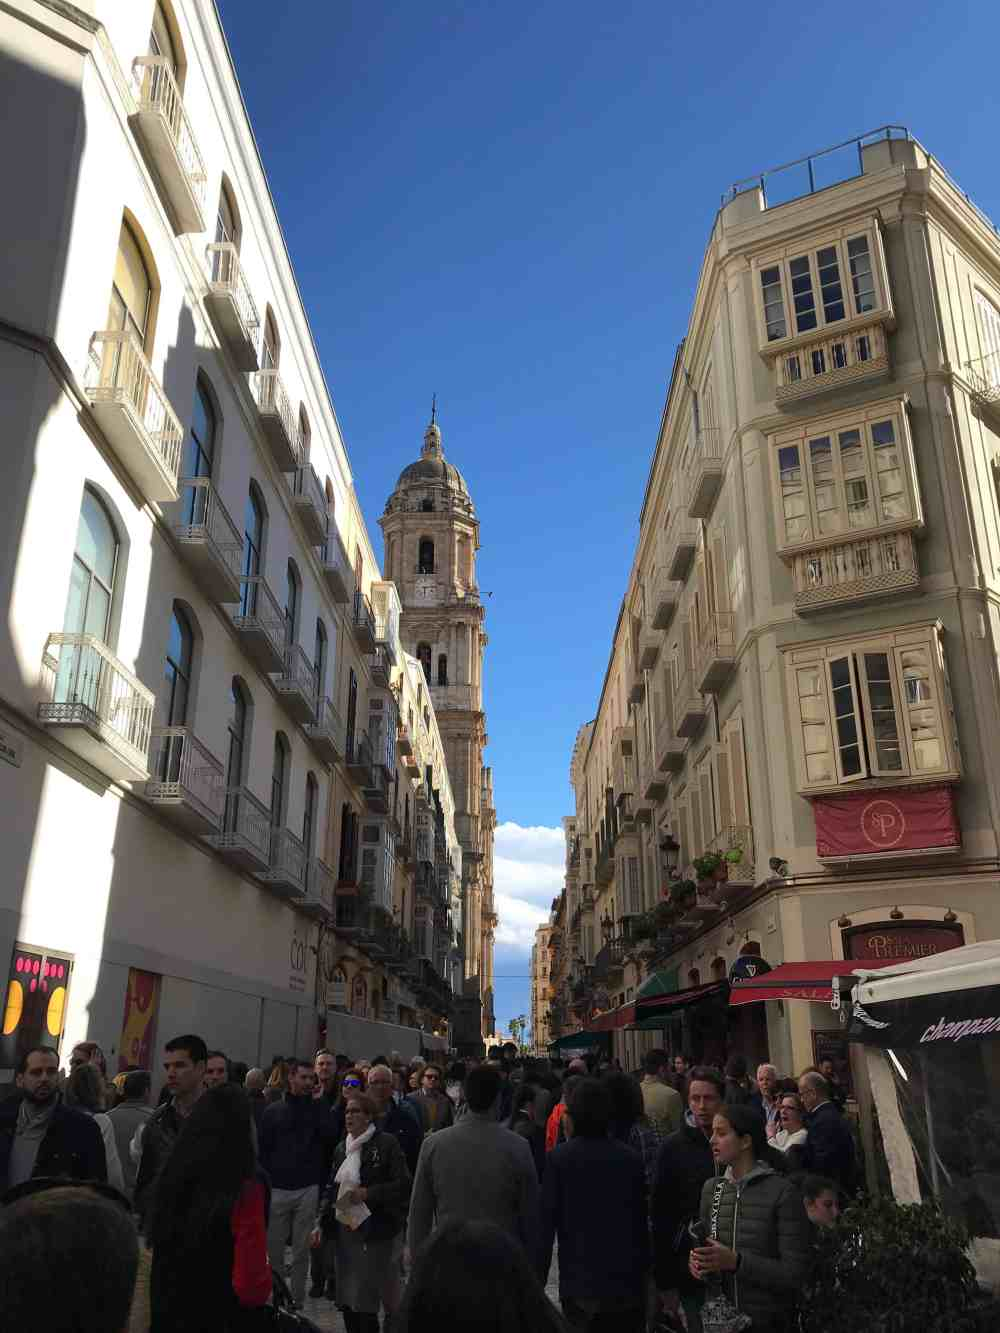 Malaga during Semana Santa, the Holy Week